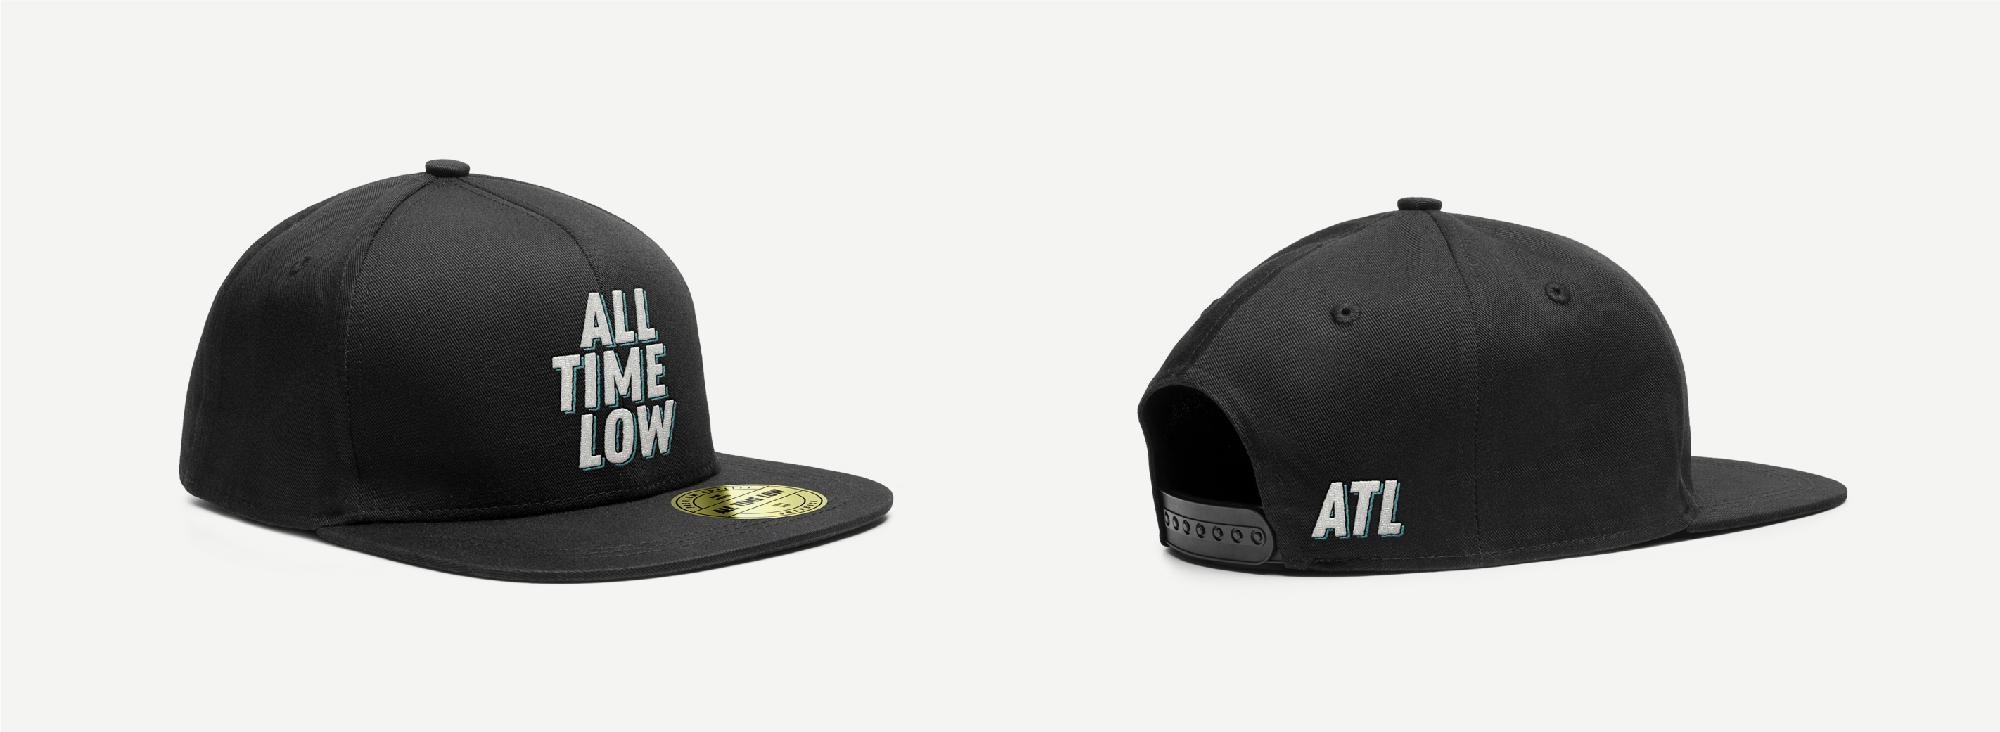 All Time Low Hat